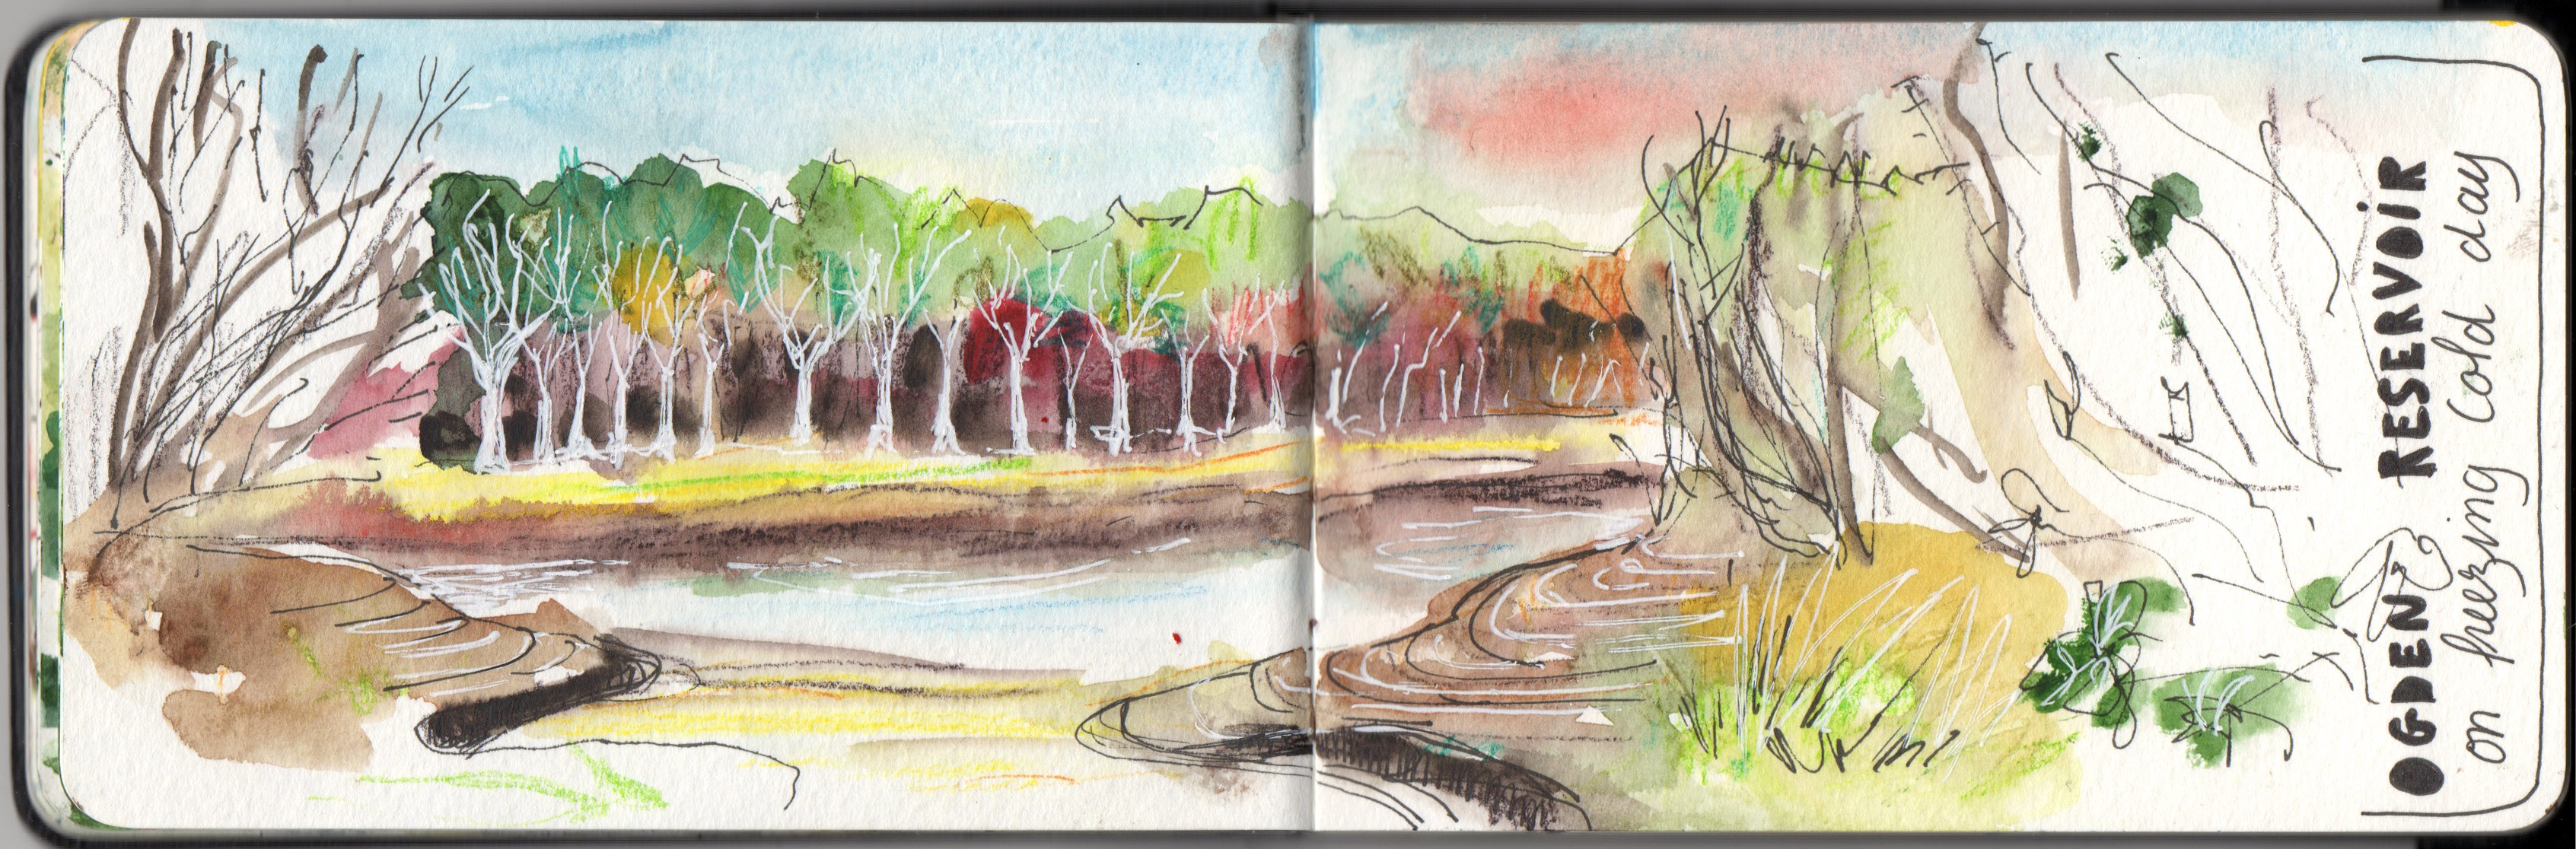 Ogden water in Winter - Watercolour, pen and pencil sketch by Sophie Peanut